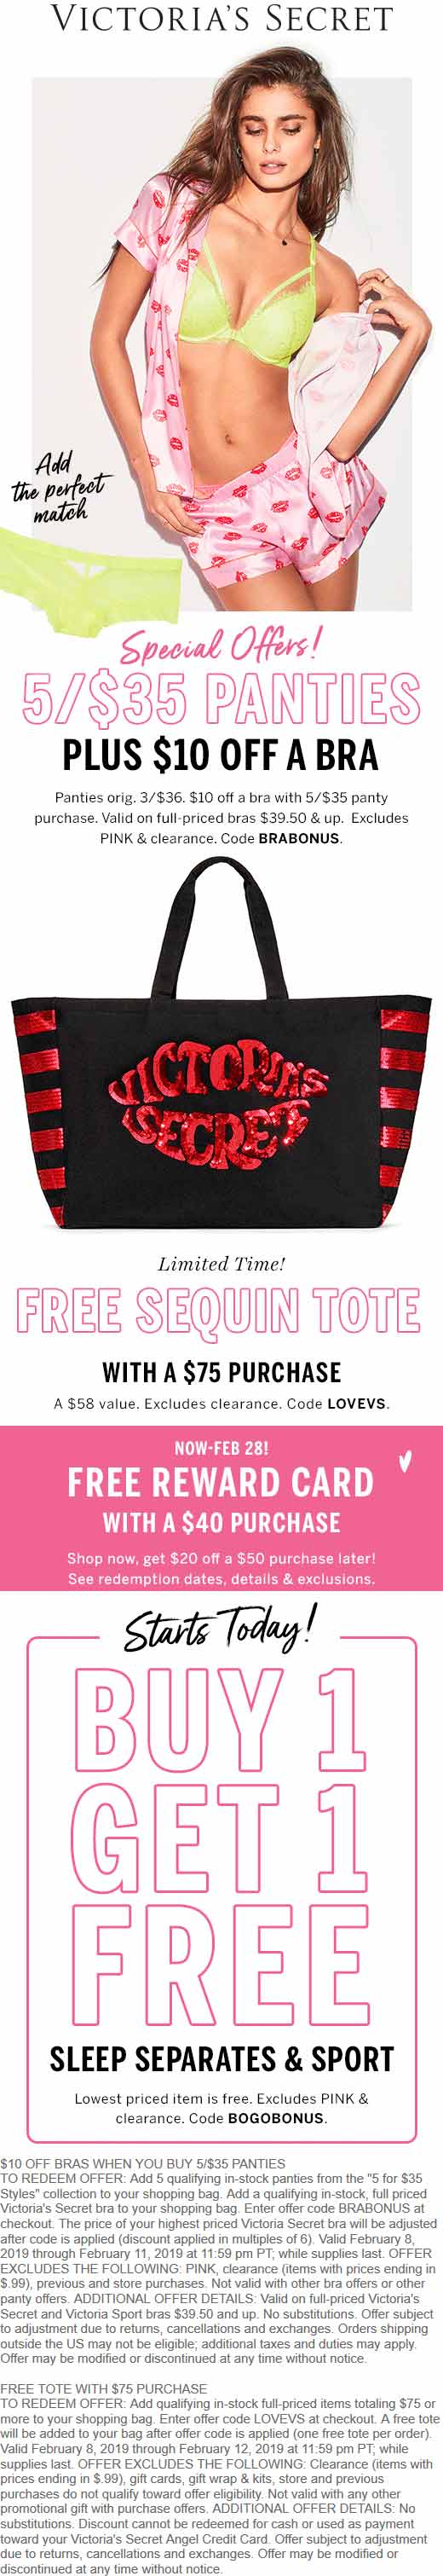 Victorias Secret Coupon January 2020 Free sequin tote with $75 spent online at Victorias Secret via promo code LOVEVS